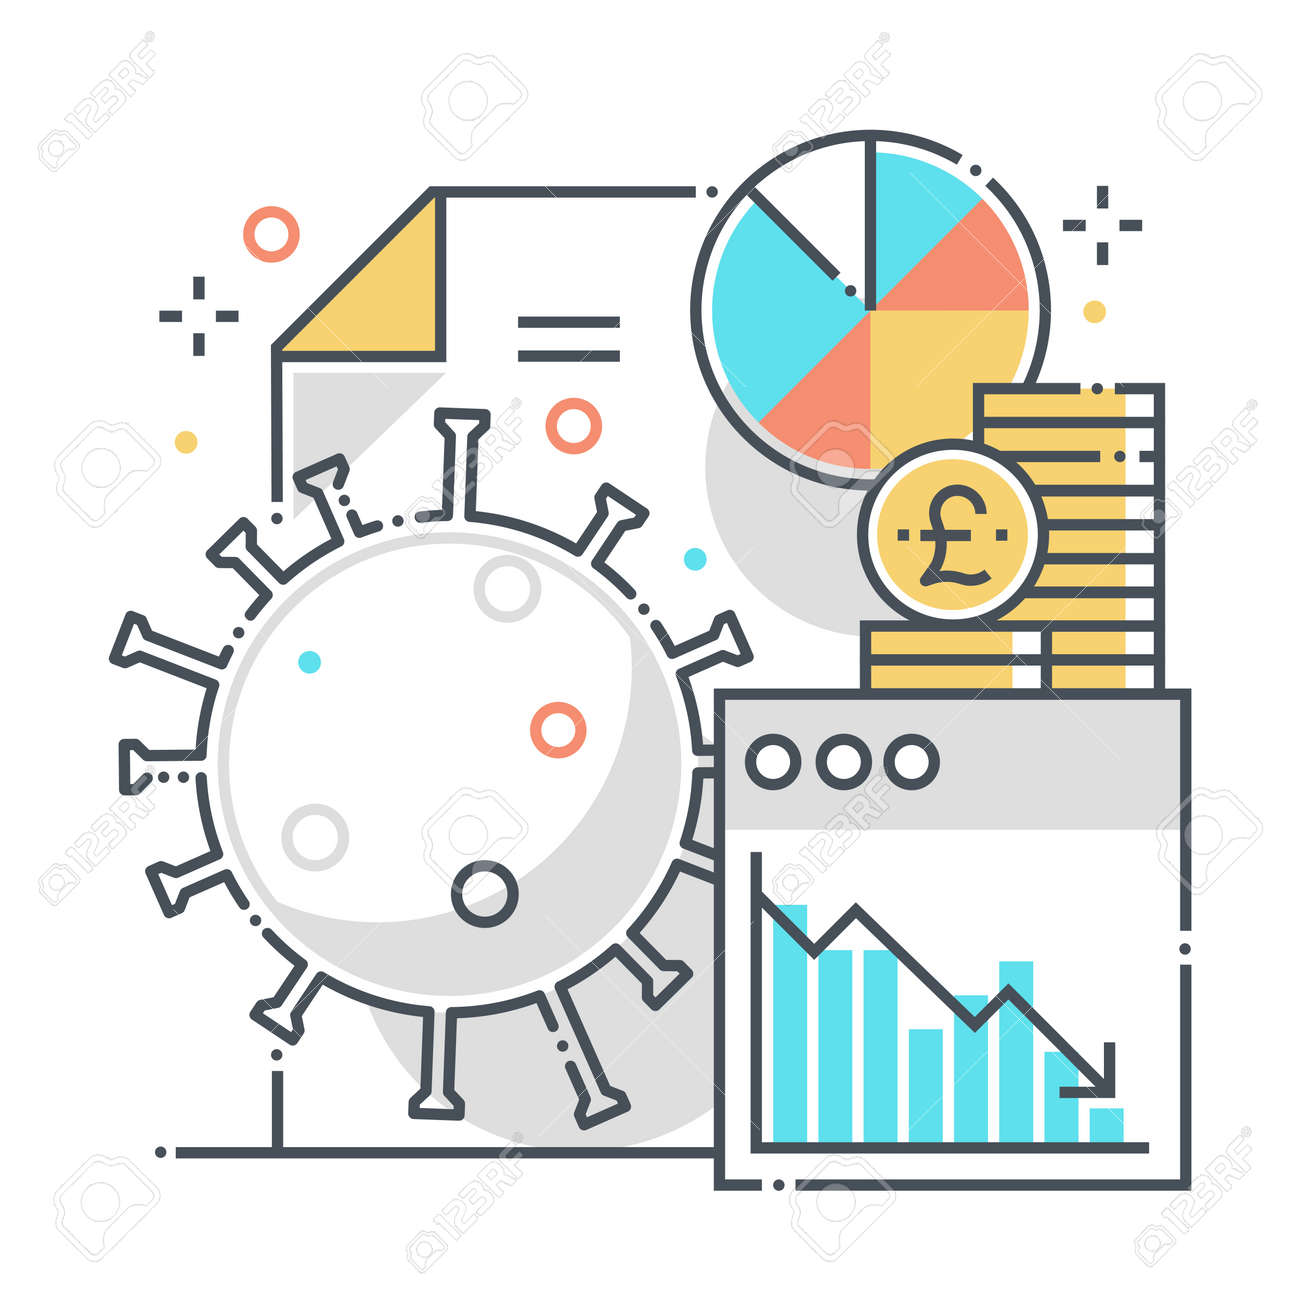 Economy related color line vector icon, illustration. The icon is about statistics, countries, report, percentage, pie chart, corona virus. The composition is infinitely scalable. - 163698141